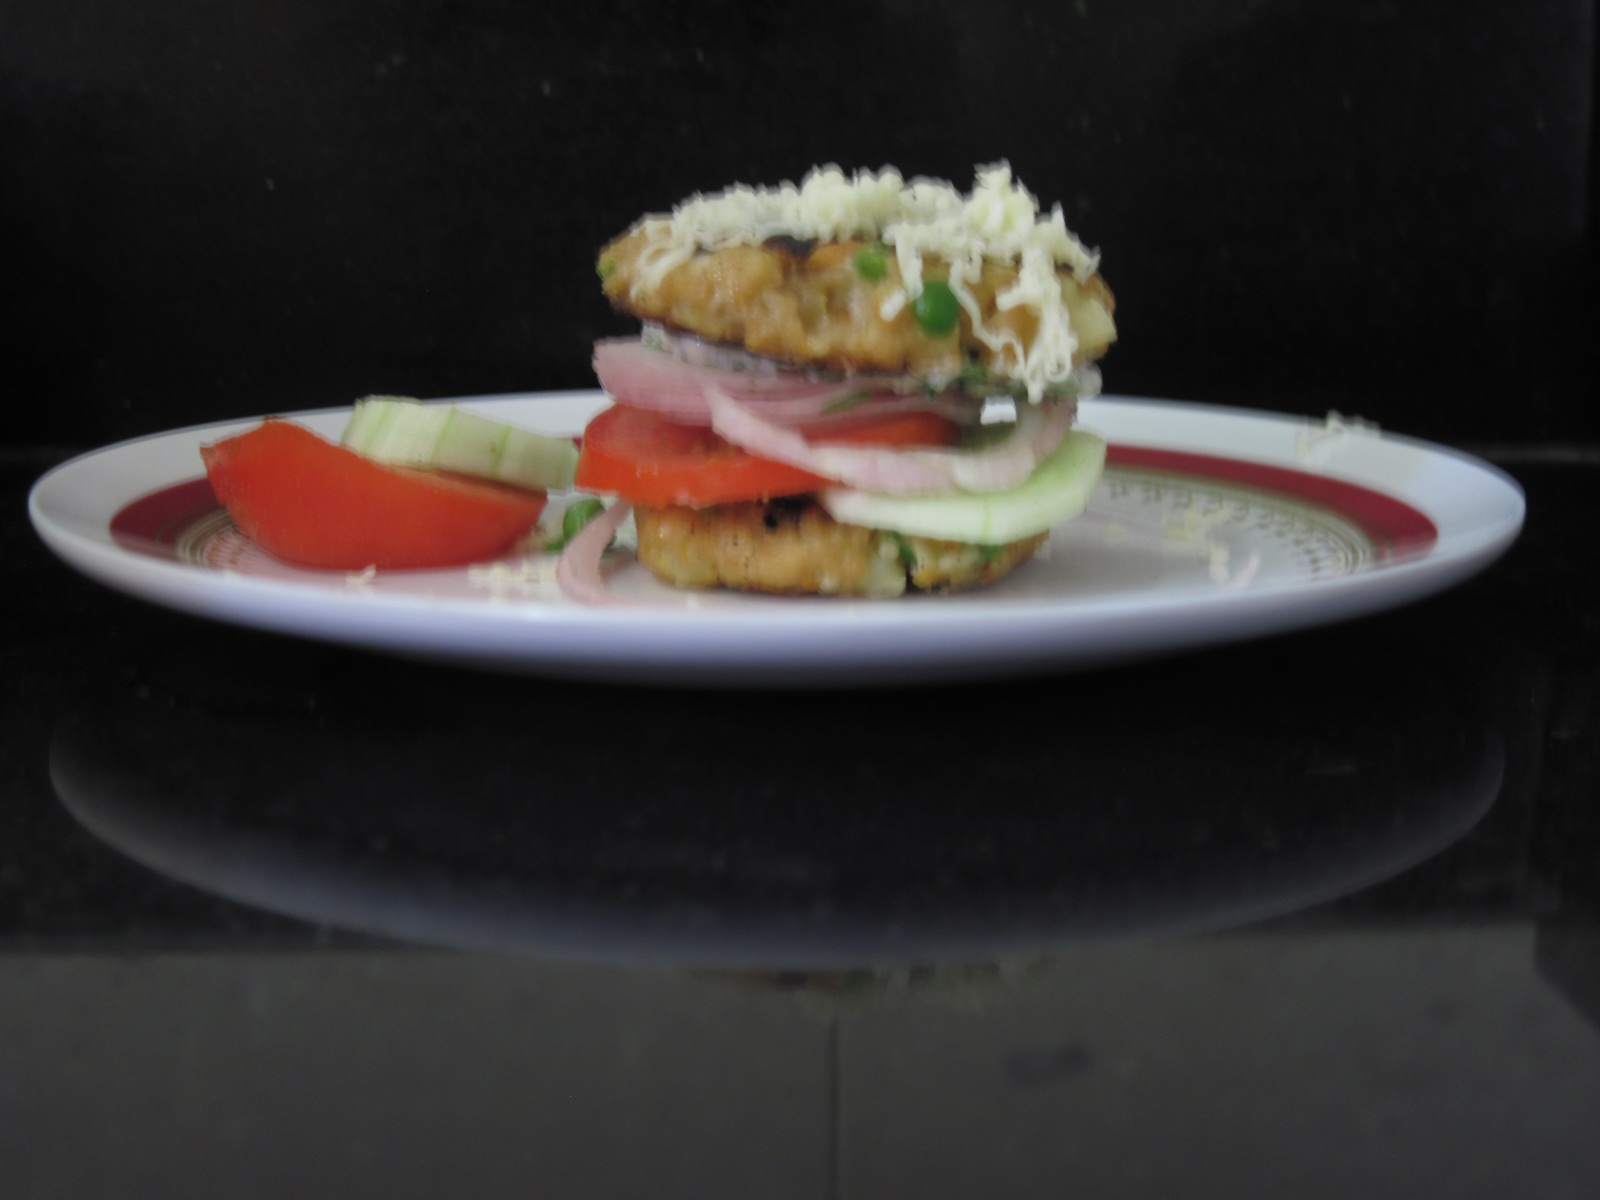 Soya Vegetable Burger with Garlic Cilantro Schmear